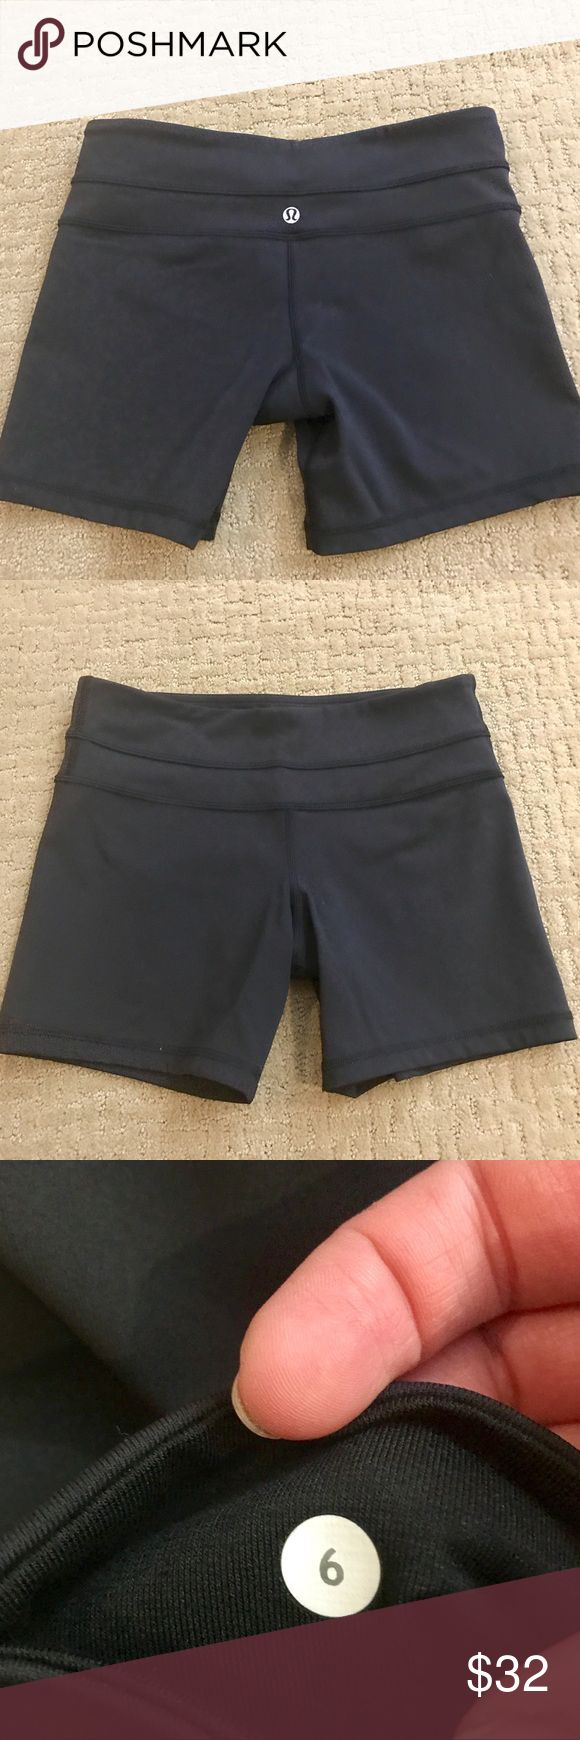 🆕 Lululemon Black Spandex Shorts Never worn lulu spandex shorts in black. In perfect condition. Size 6. lululemon athletica Shorts